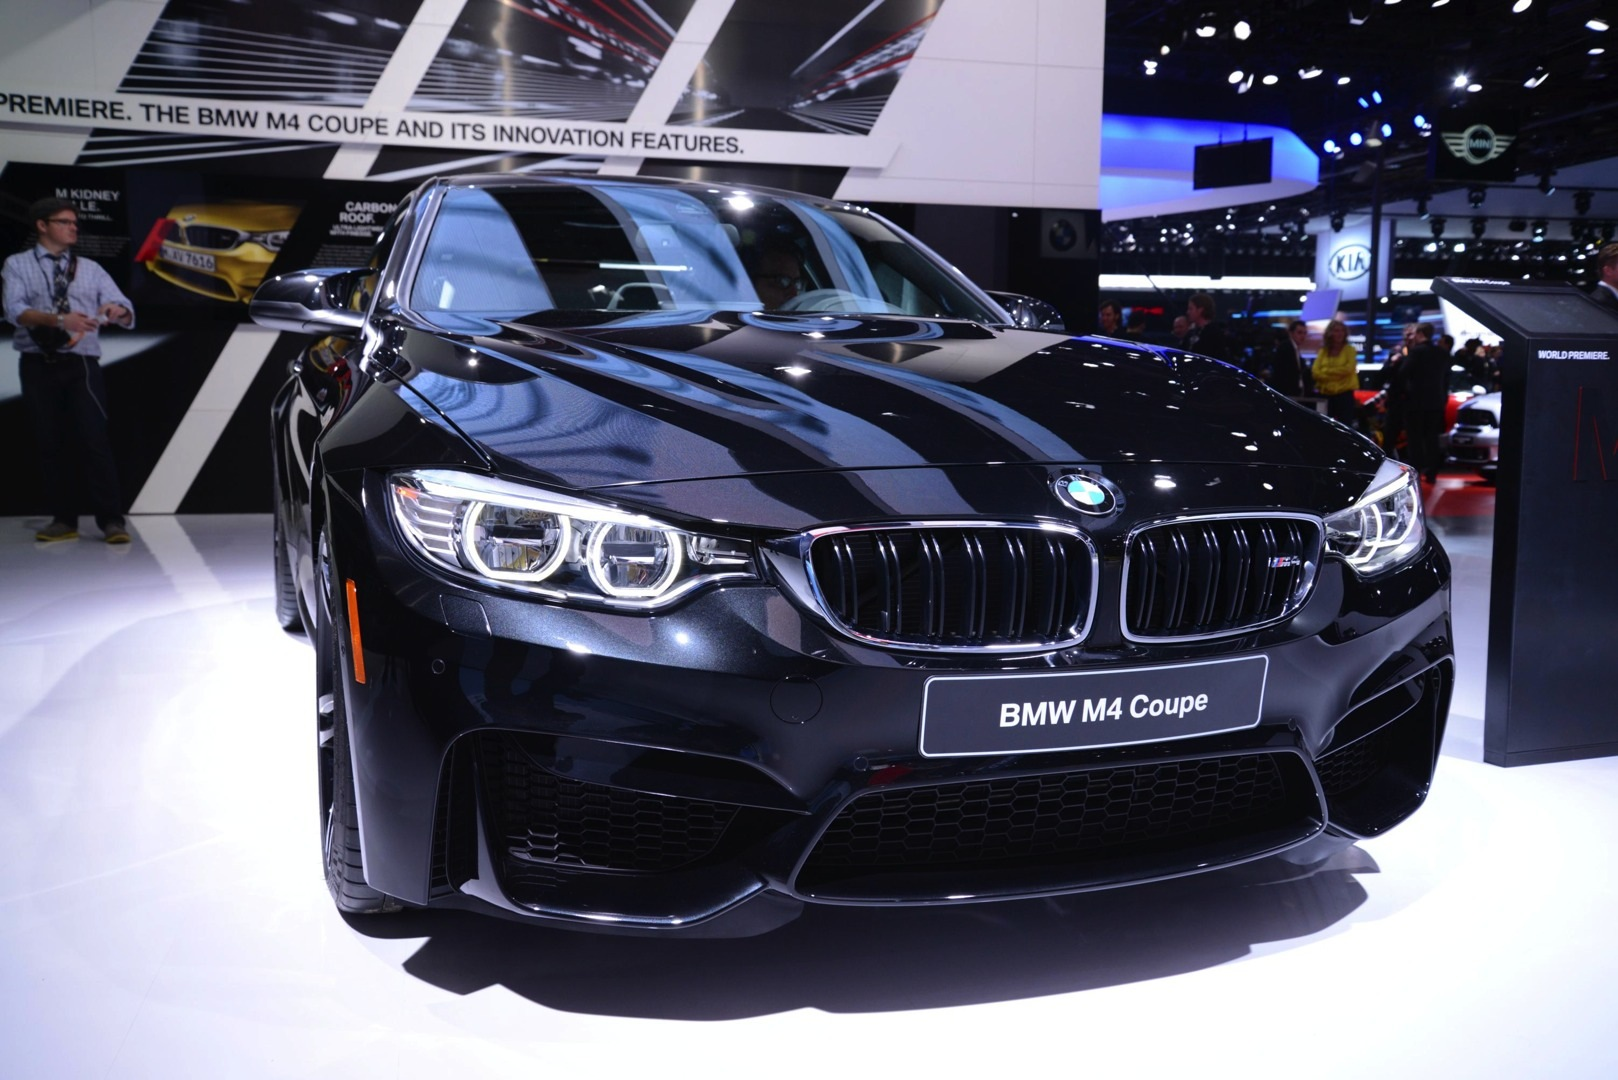 Sapphire Black Bmw M4 Looks Brilliant At 2014 Naias Live